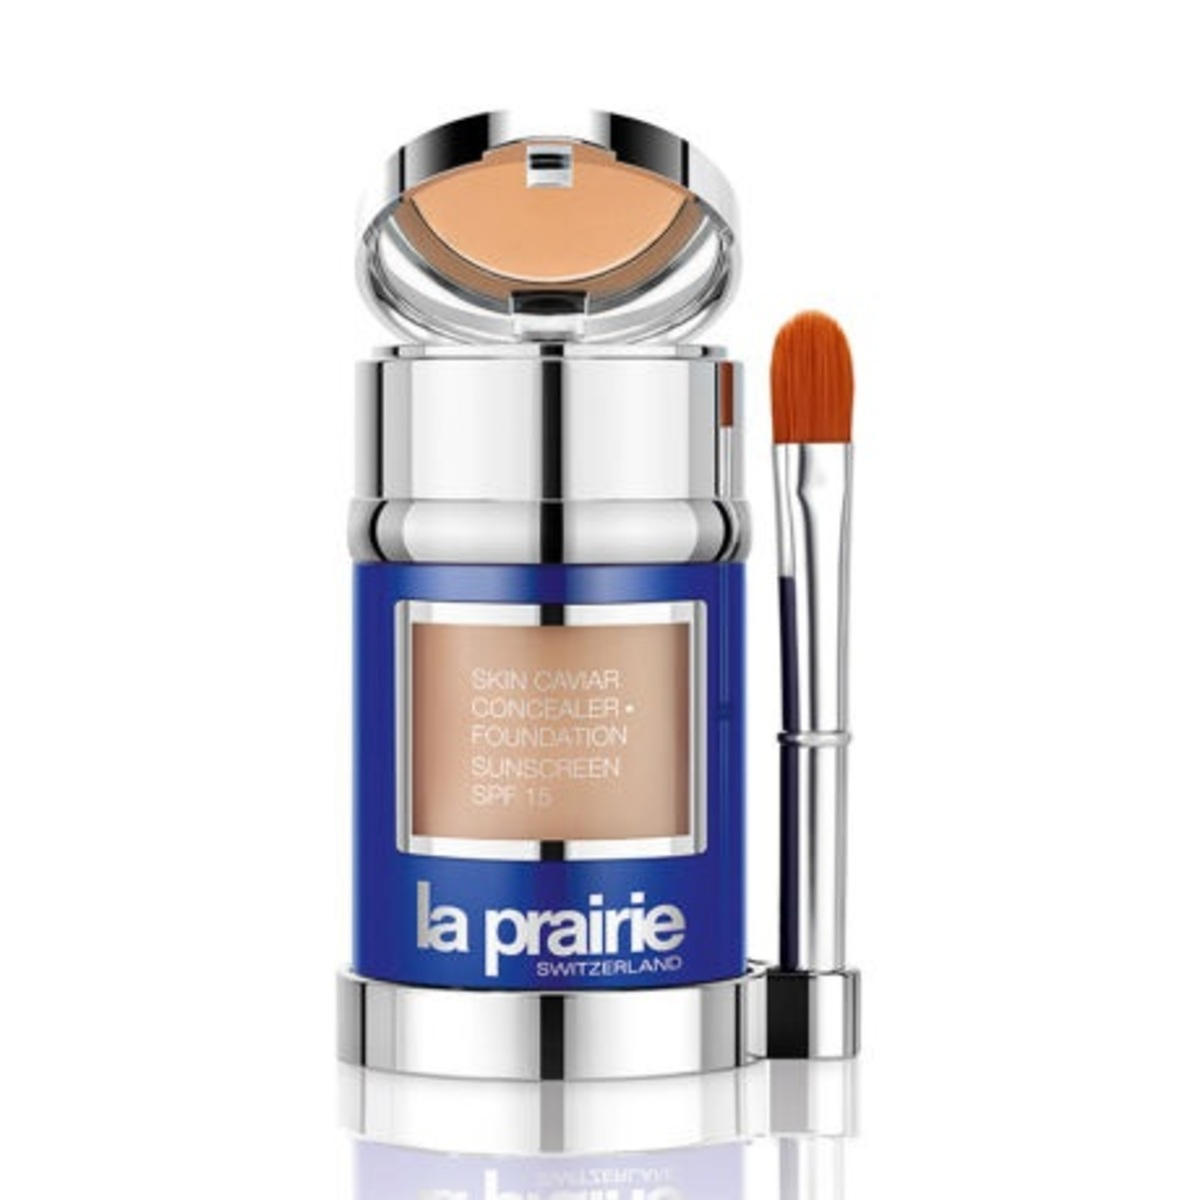 LA PRAIRIE Skin Caviar Concealer Foundation SPF15 TEN IVORY 30ml TEN IVORY [parallel import]